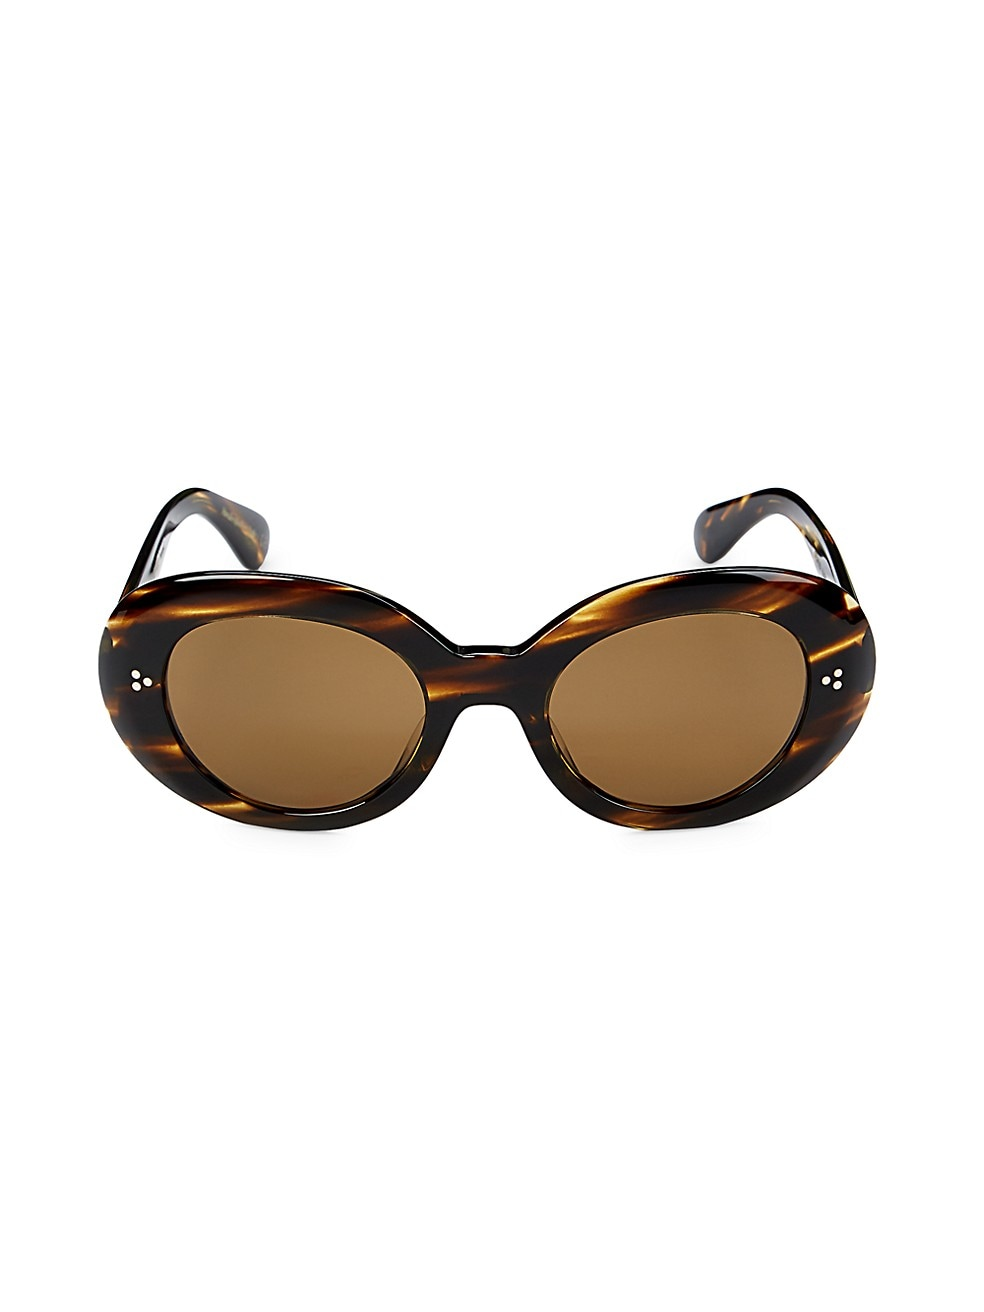 Errissa 52MM Oval Sunglasses by Oliver Peoples, available on saksoff5th.com for $104.99 Kaia Gerber Sunglasses Exact Product